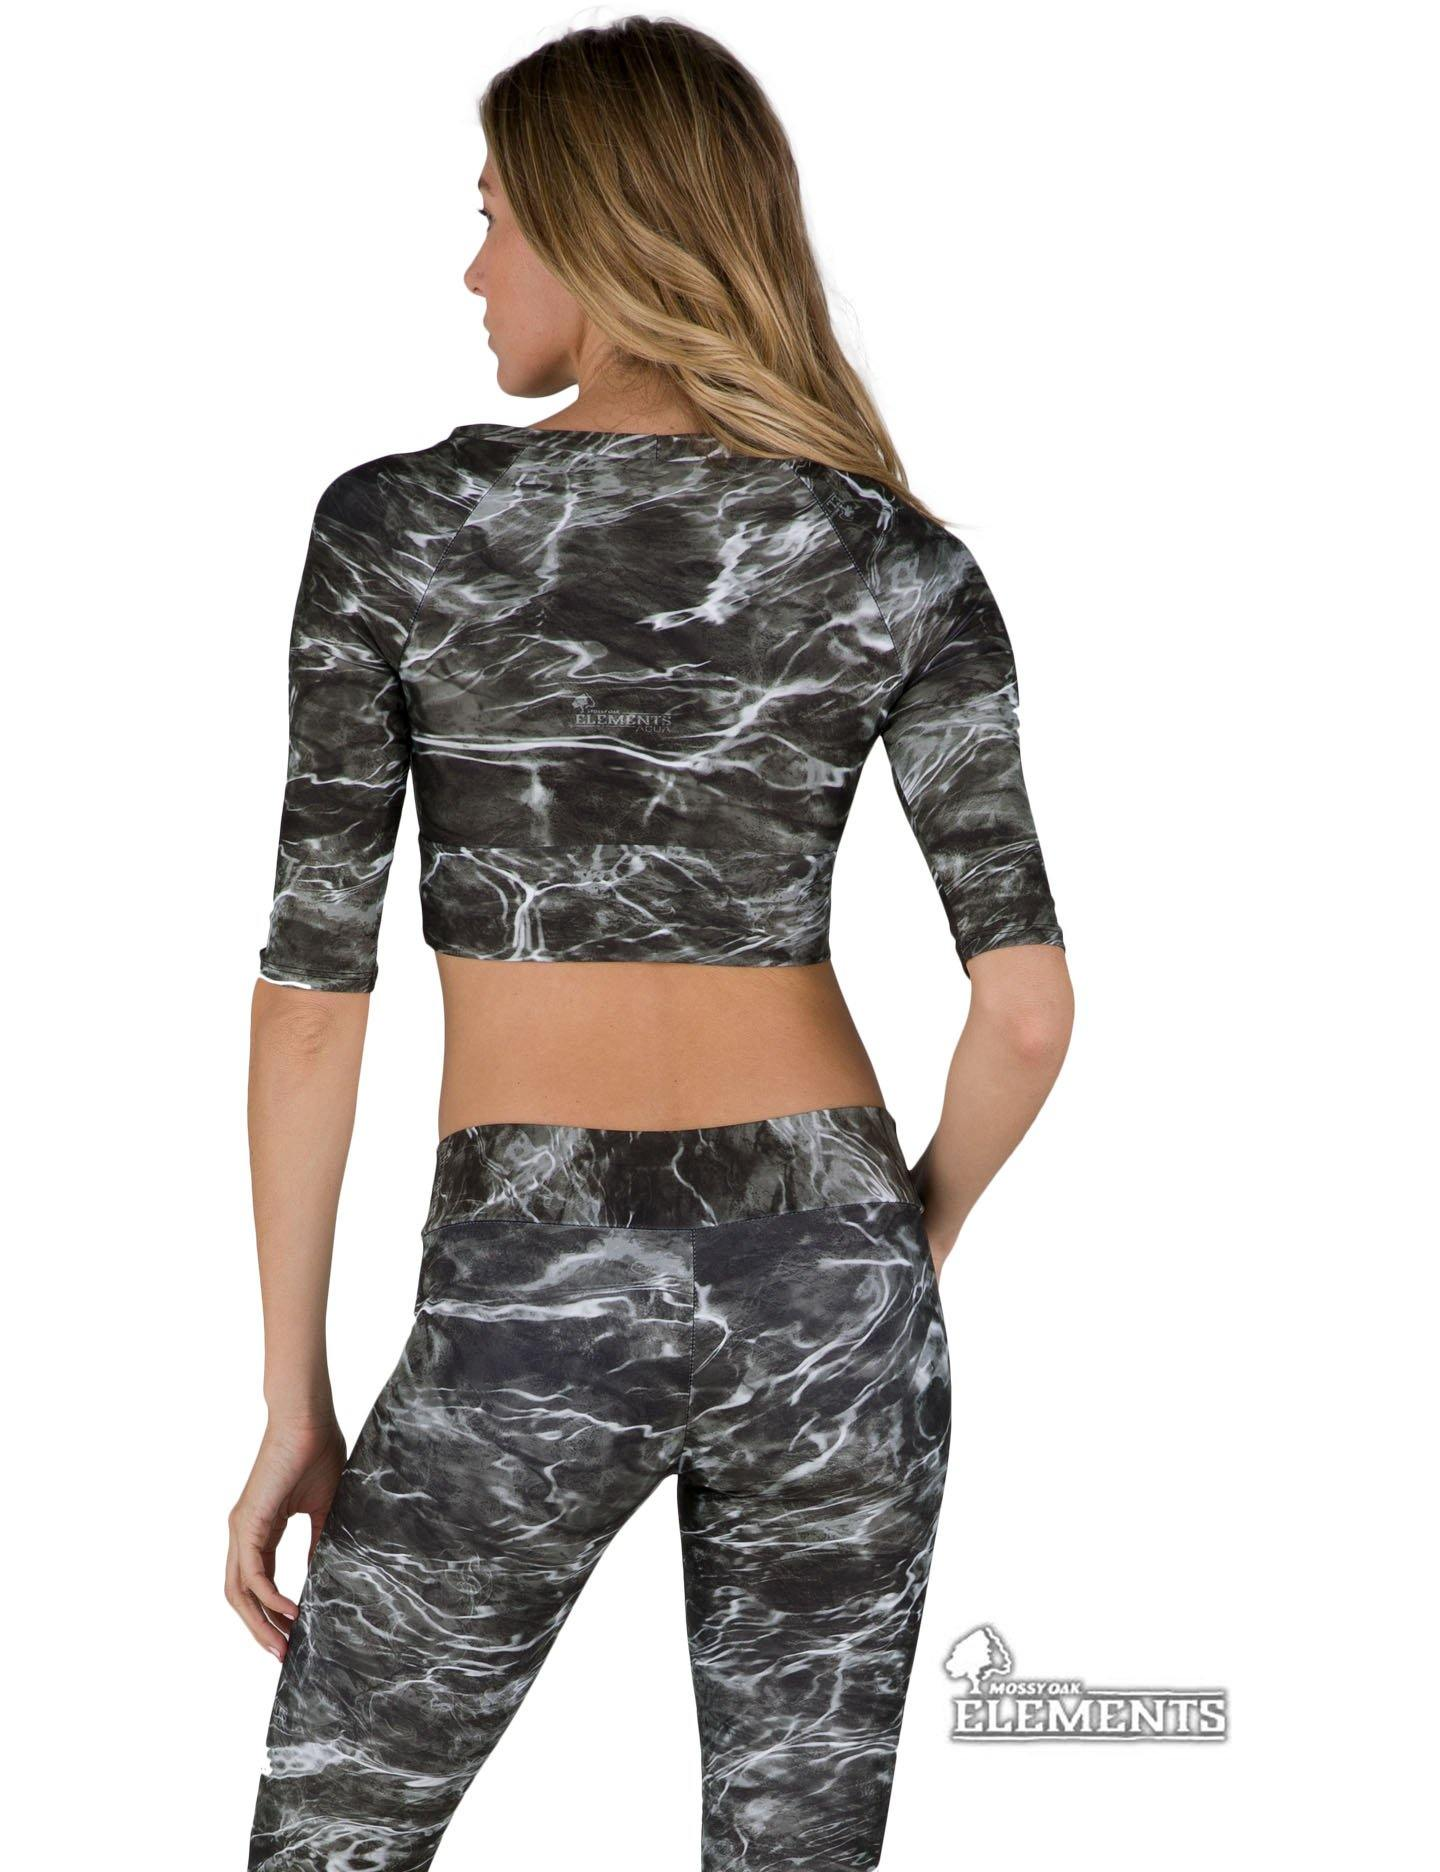 Apsara Cropped Top, Mossy Oak Elements Blacktip